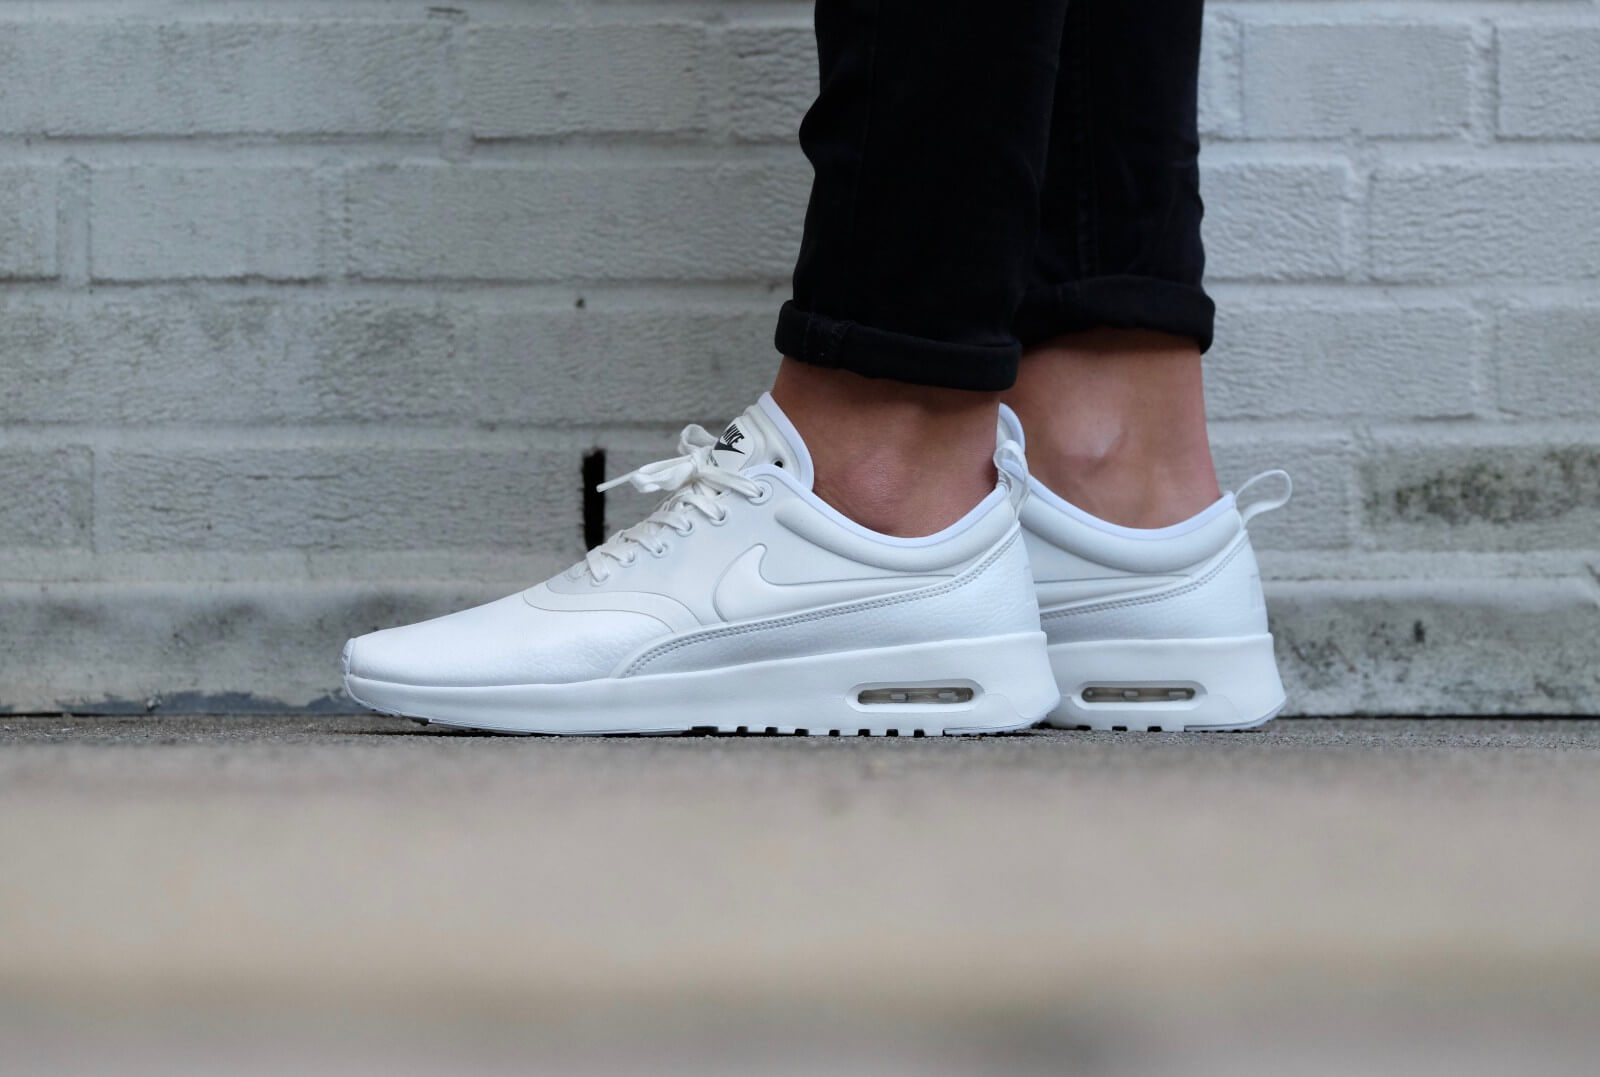 Nike Air Max Thea Ultra Premium Summit White Summit White 848279 100